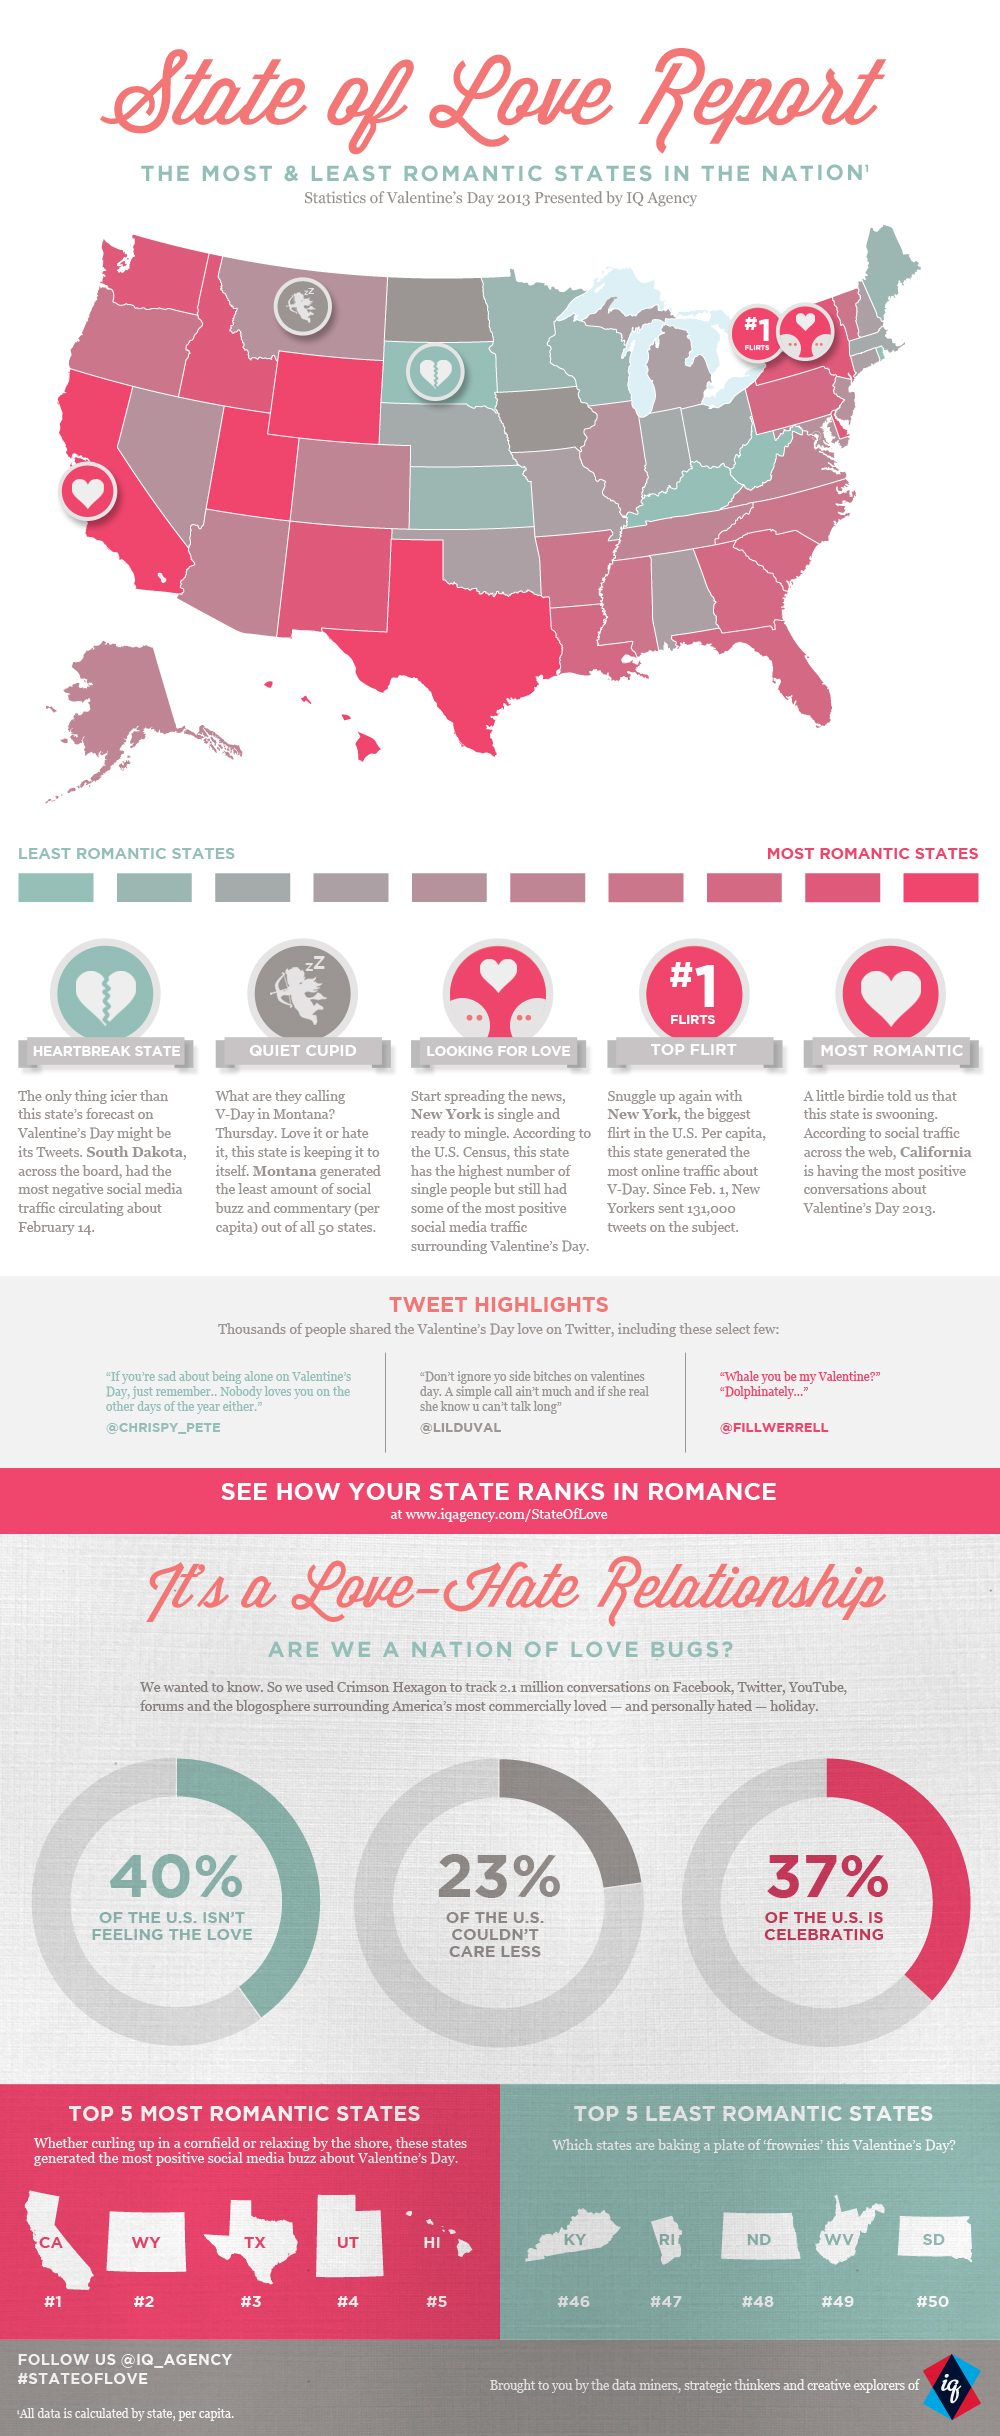 state_of_love_infographic-8325223